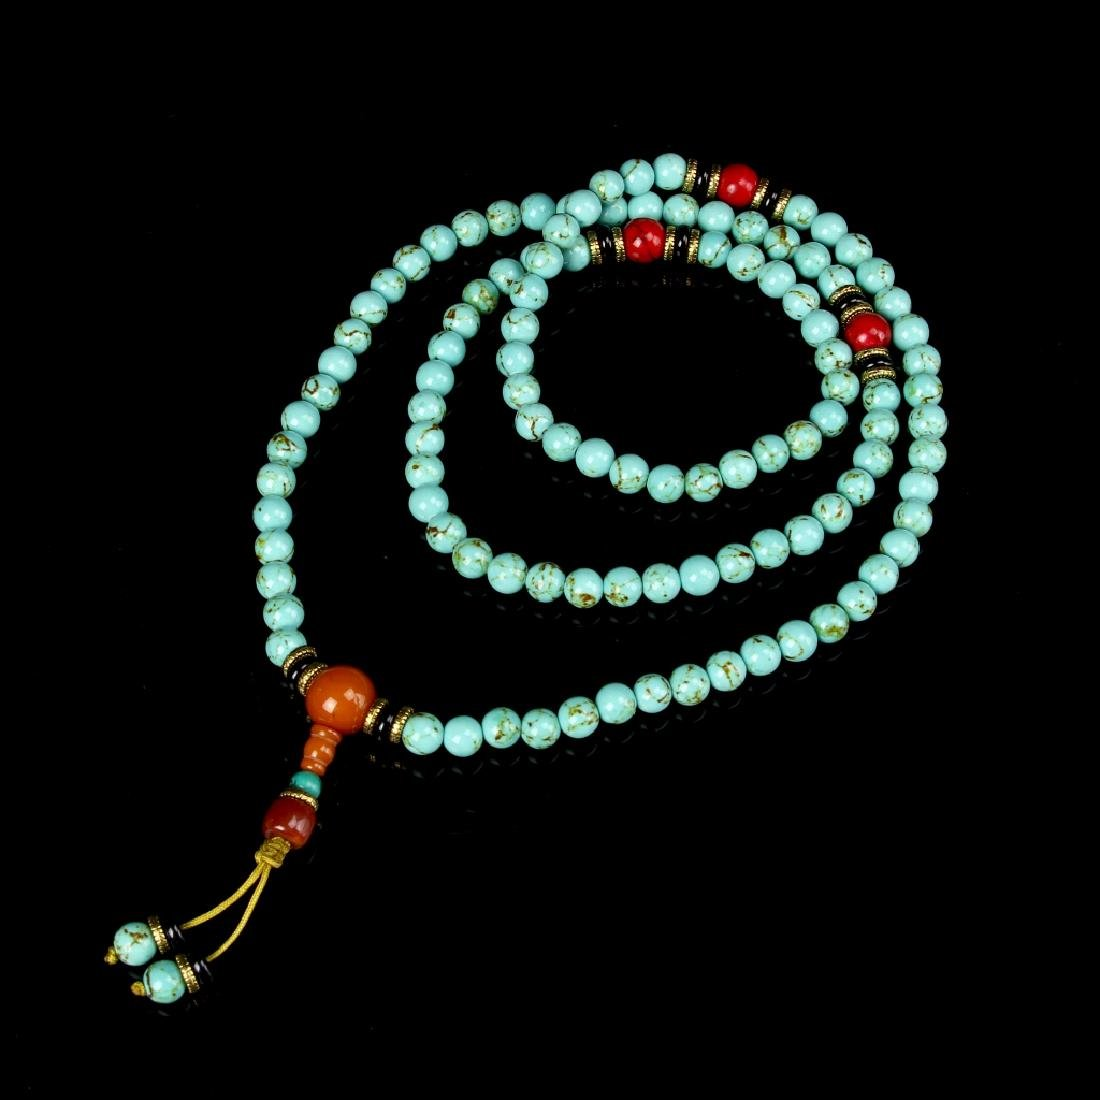 Chinese Tibetan Turquoise Necklace